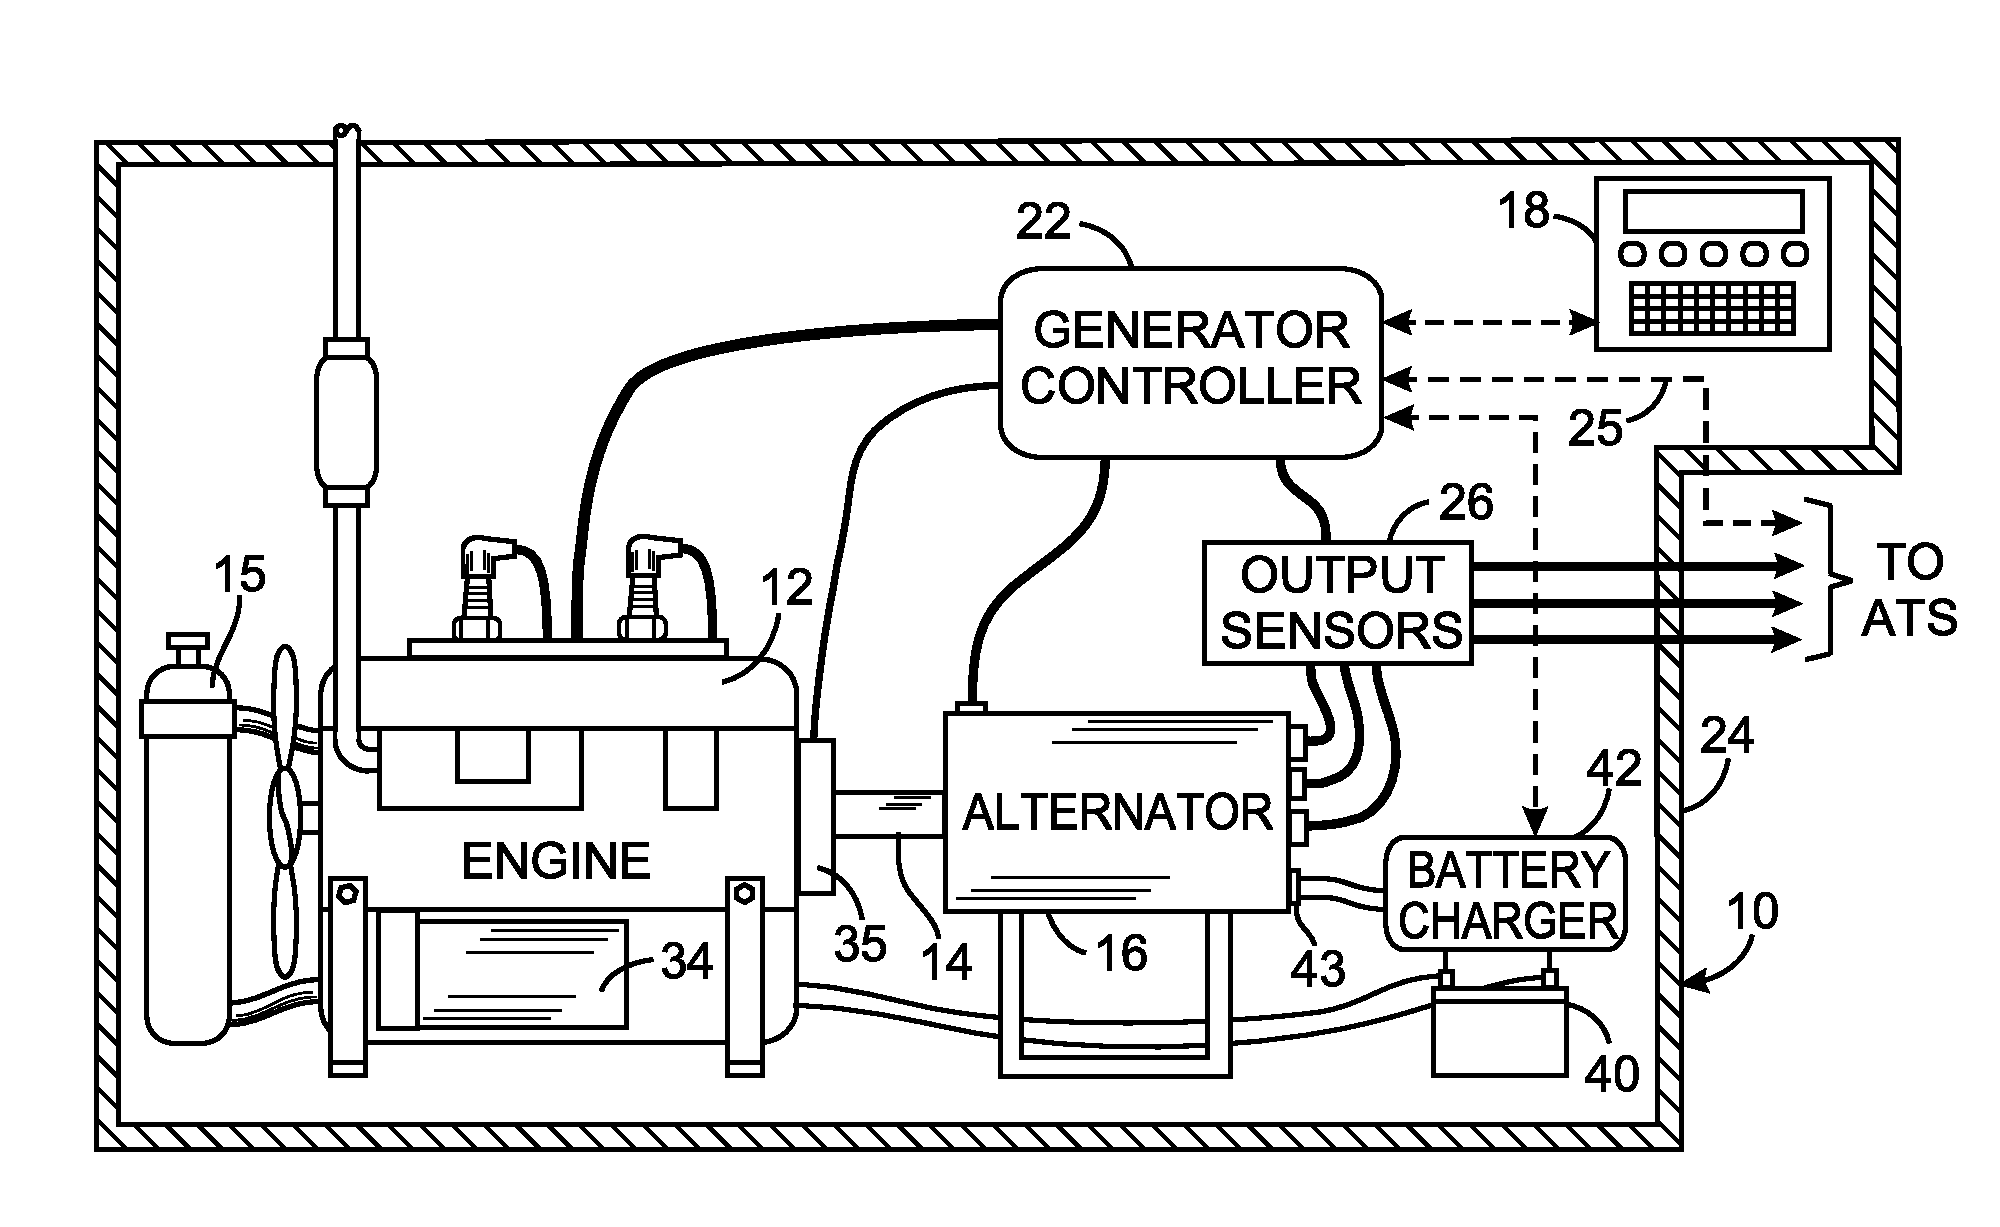 Wiring Diagram Kohler Gen Sets Page 2 And Schematics Standby Generator Generac Diagrams Free Engine Image For User Manual Automatic Transfer Switch